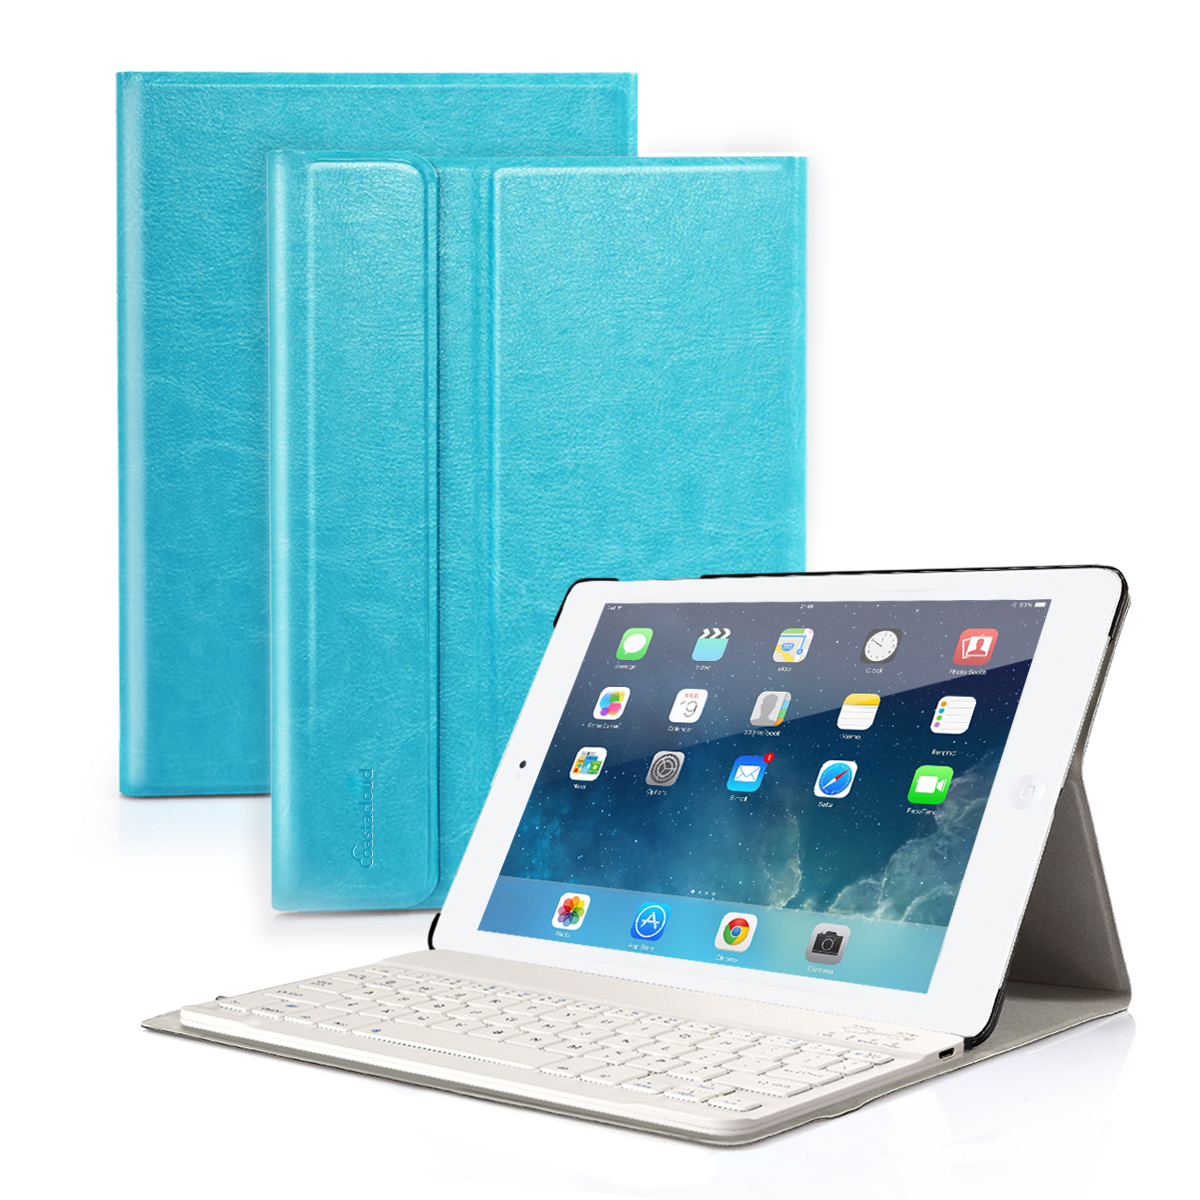 "New 2017 iPad 9.7"", iPad Pro 9.7, iPad Air 1 Air 2 Keyboard Case - Detachable Bluetooth Keyboard with Anti-Slip Slim Leather Folio Case Cover for Apple iPad 5th Tablet (9.7"", Sky Blue)"